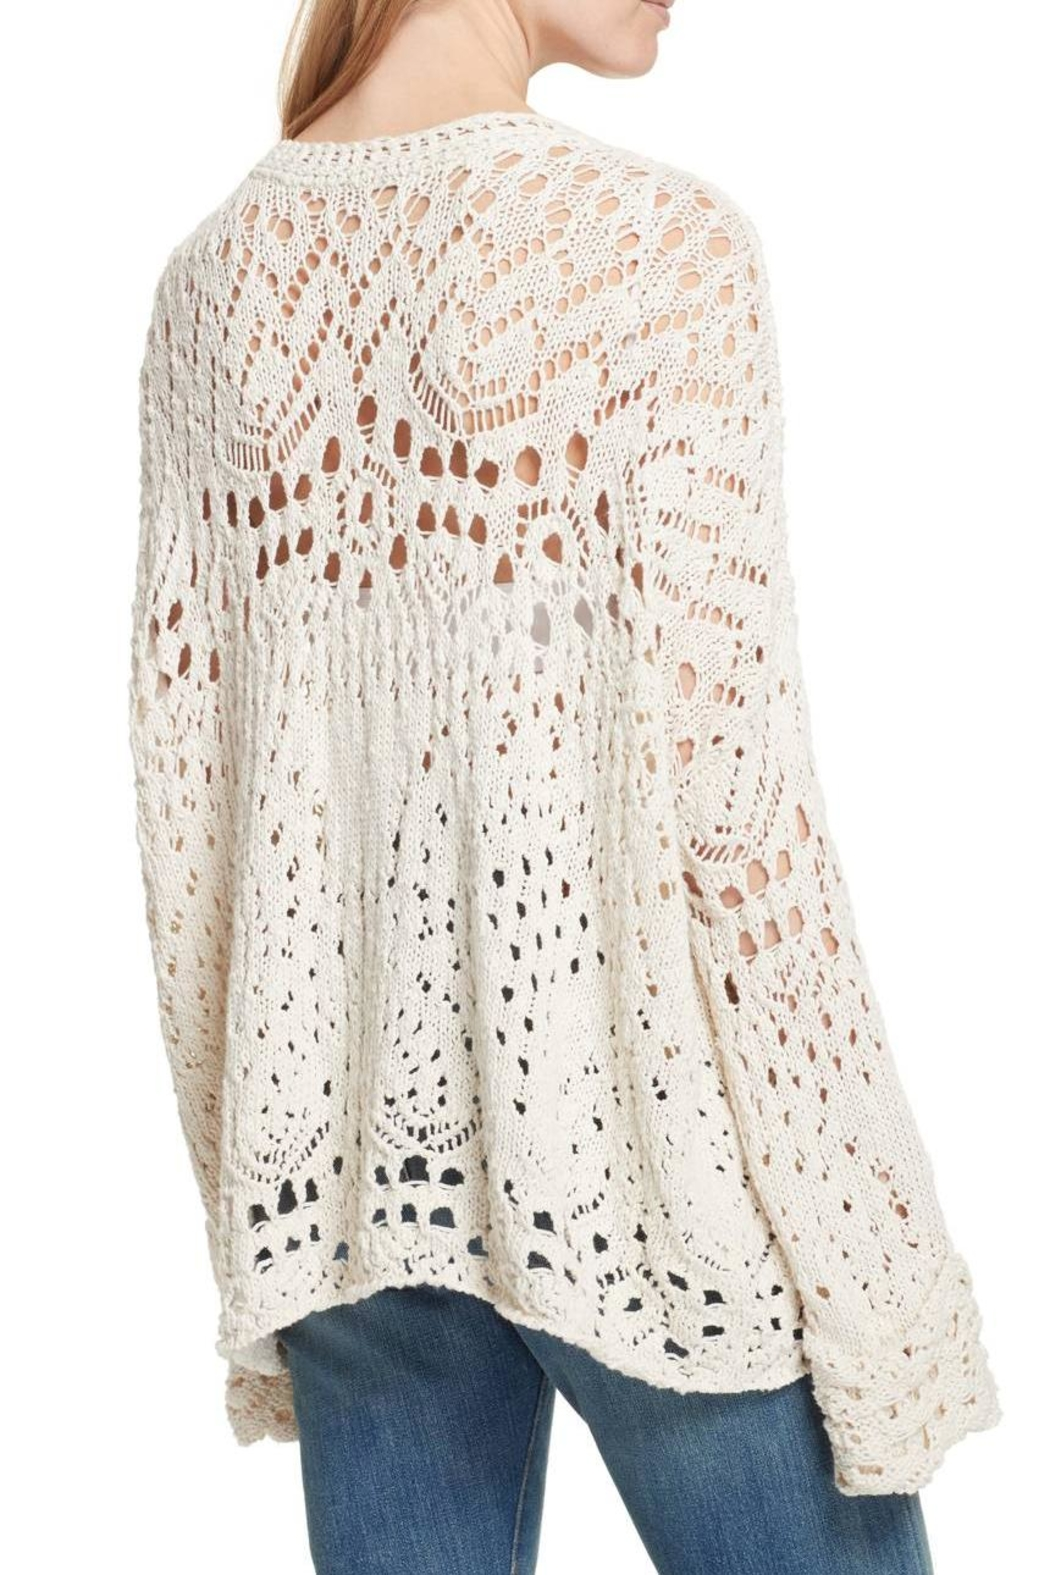 Free People Traveling Lace Sweater - Front Full Image